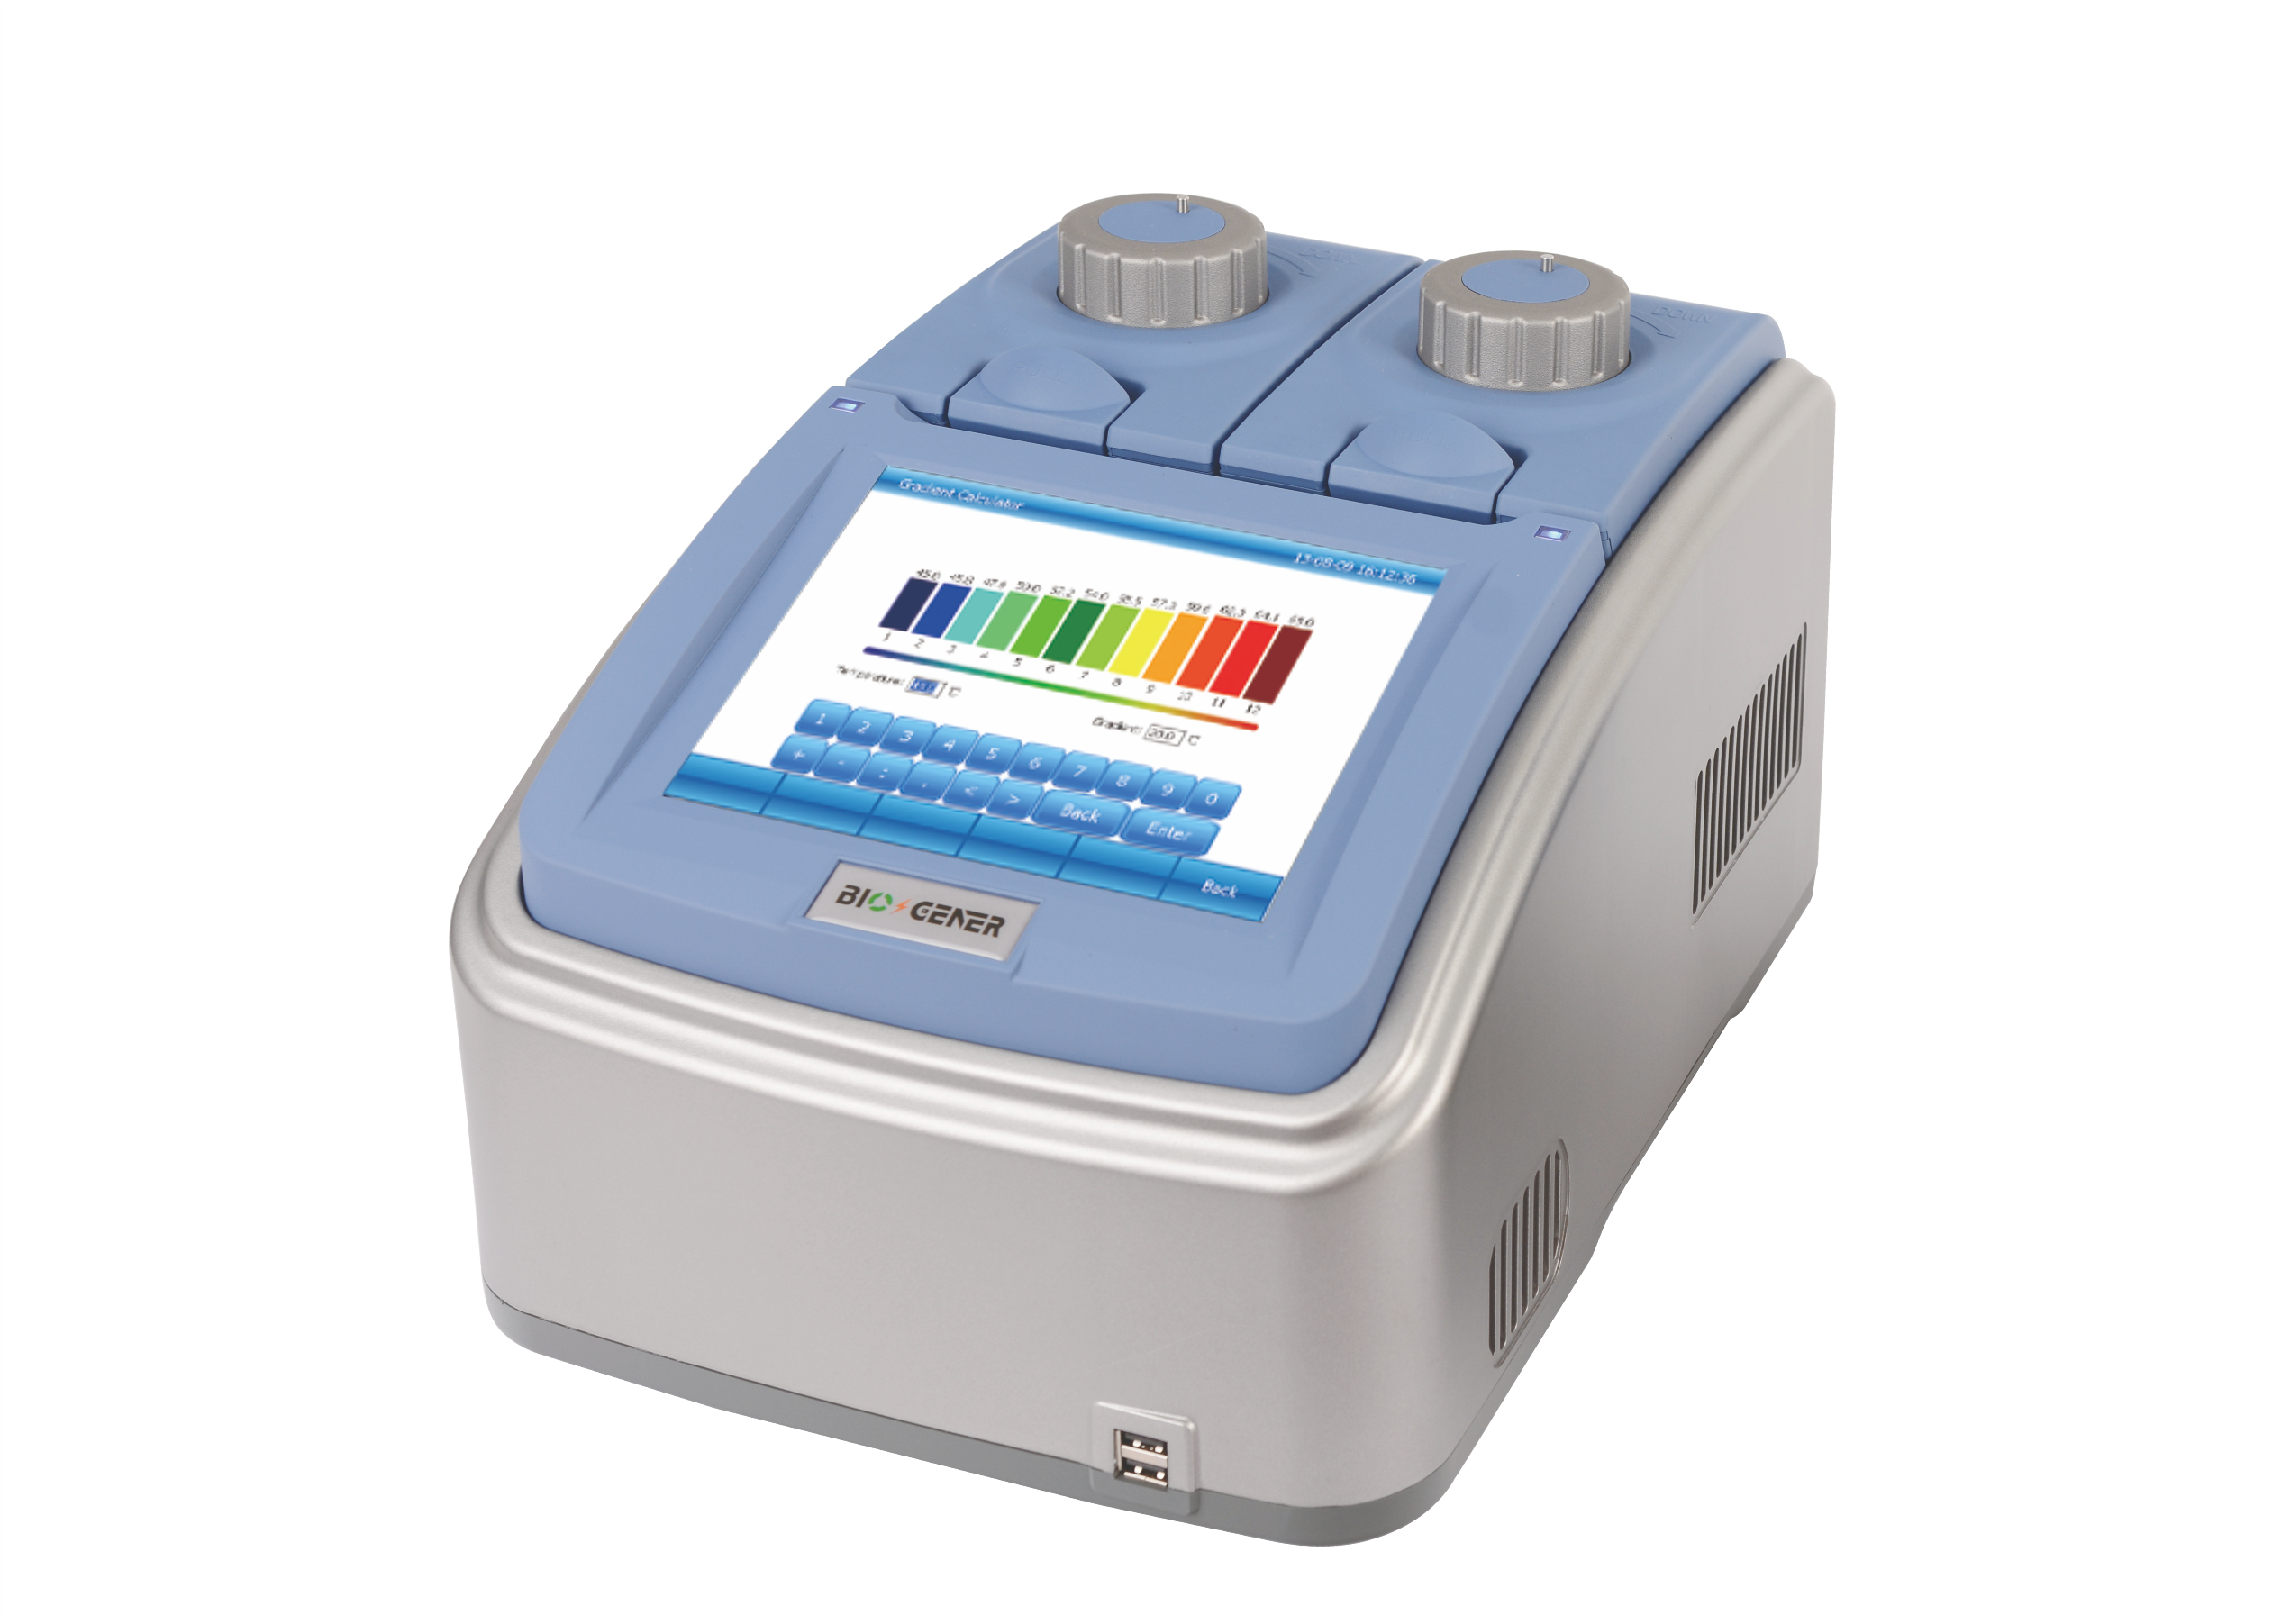 BIO-GENER Gene Explorer PCR Thermal Cycler at LabConsulting in Vienna / Austria